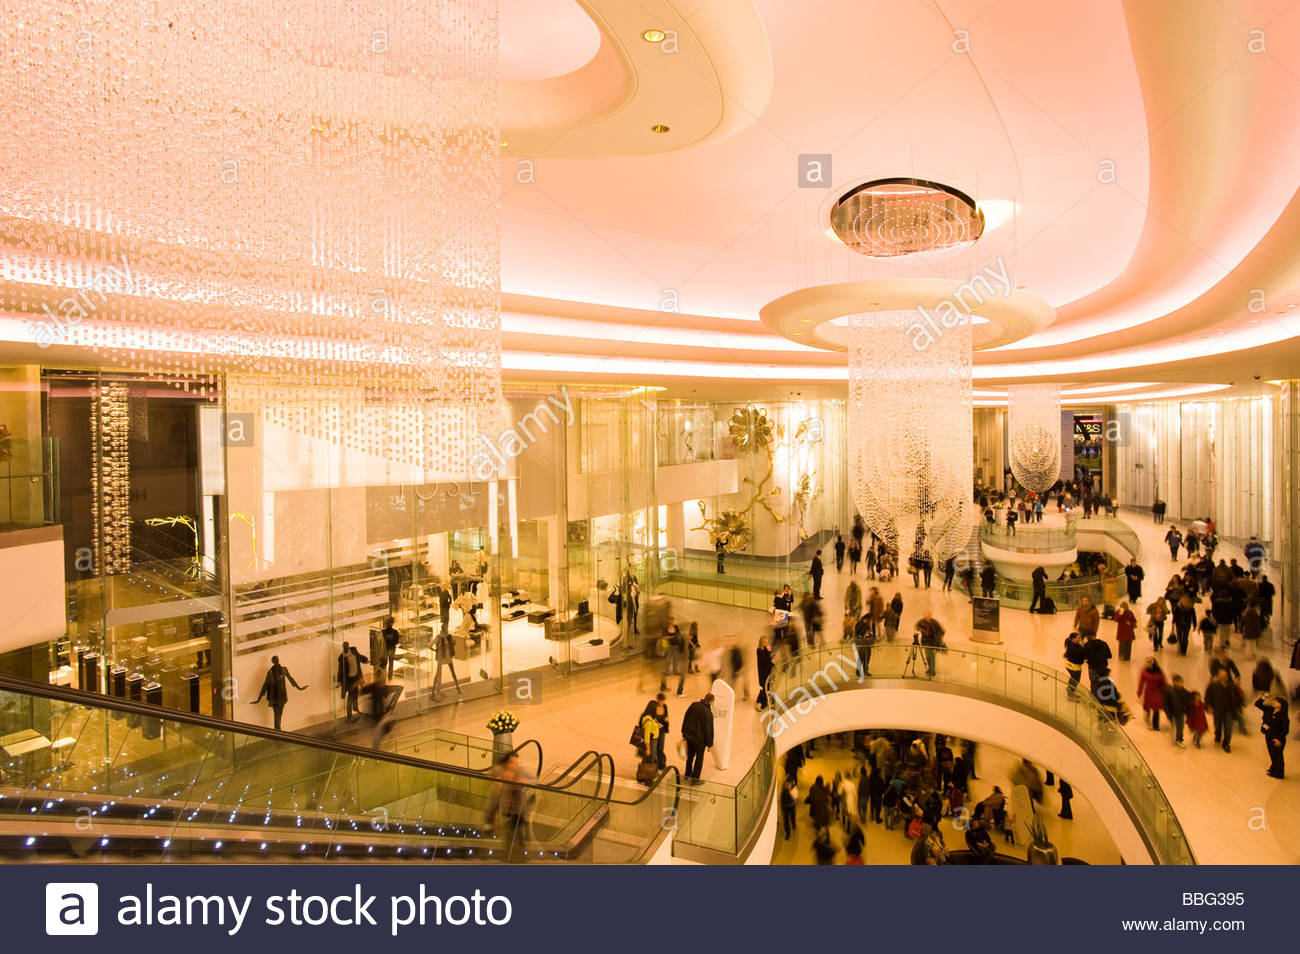 Westfield Shopping Centre, White City Development - Stock Image